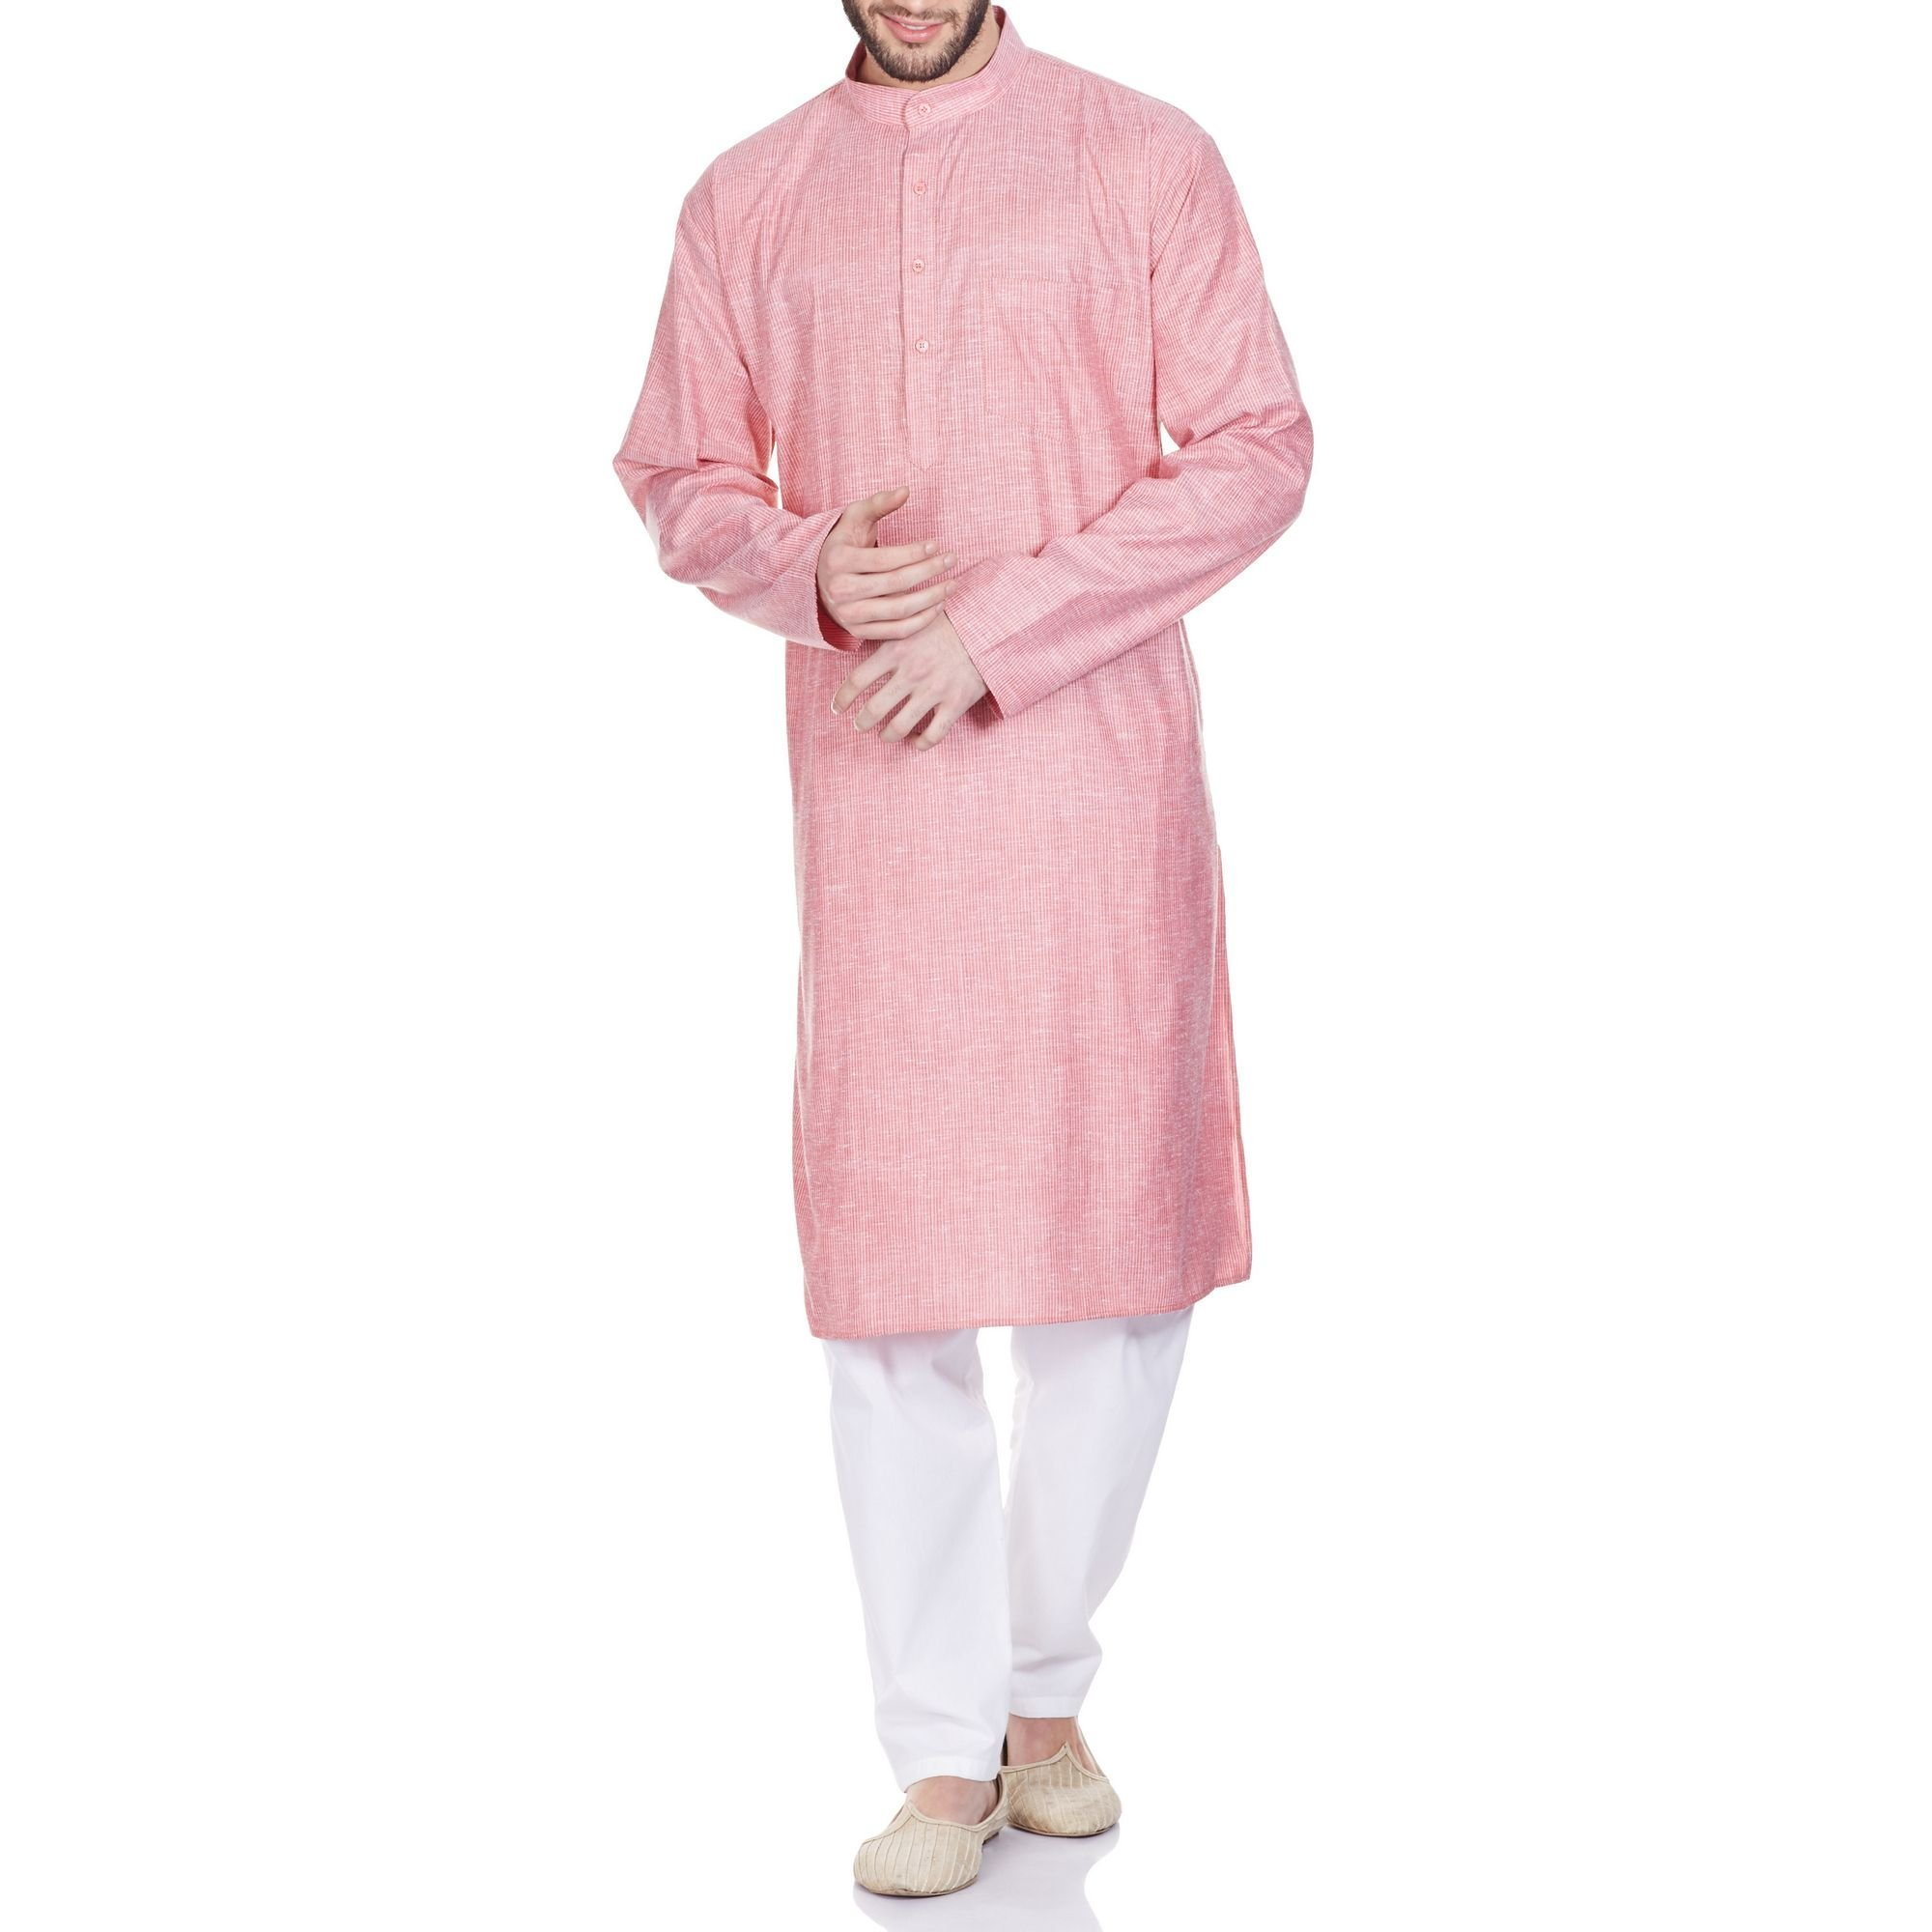 Indian Outfit Men Kurta Pajama Set Comfortable Gifts For Husband 46 Inches